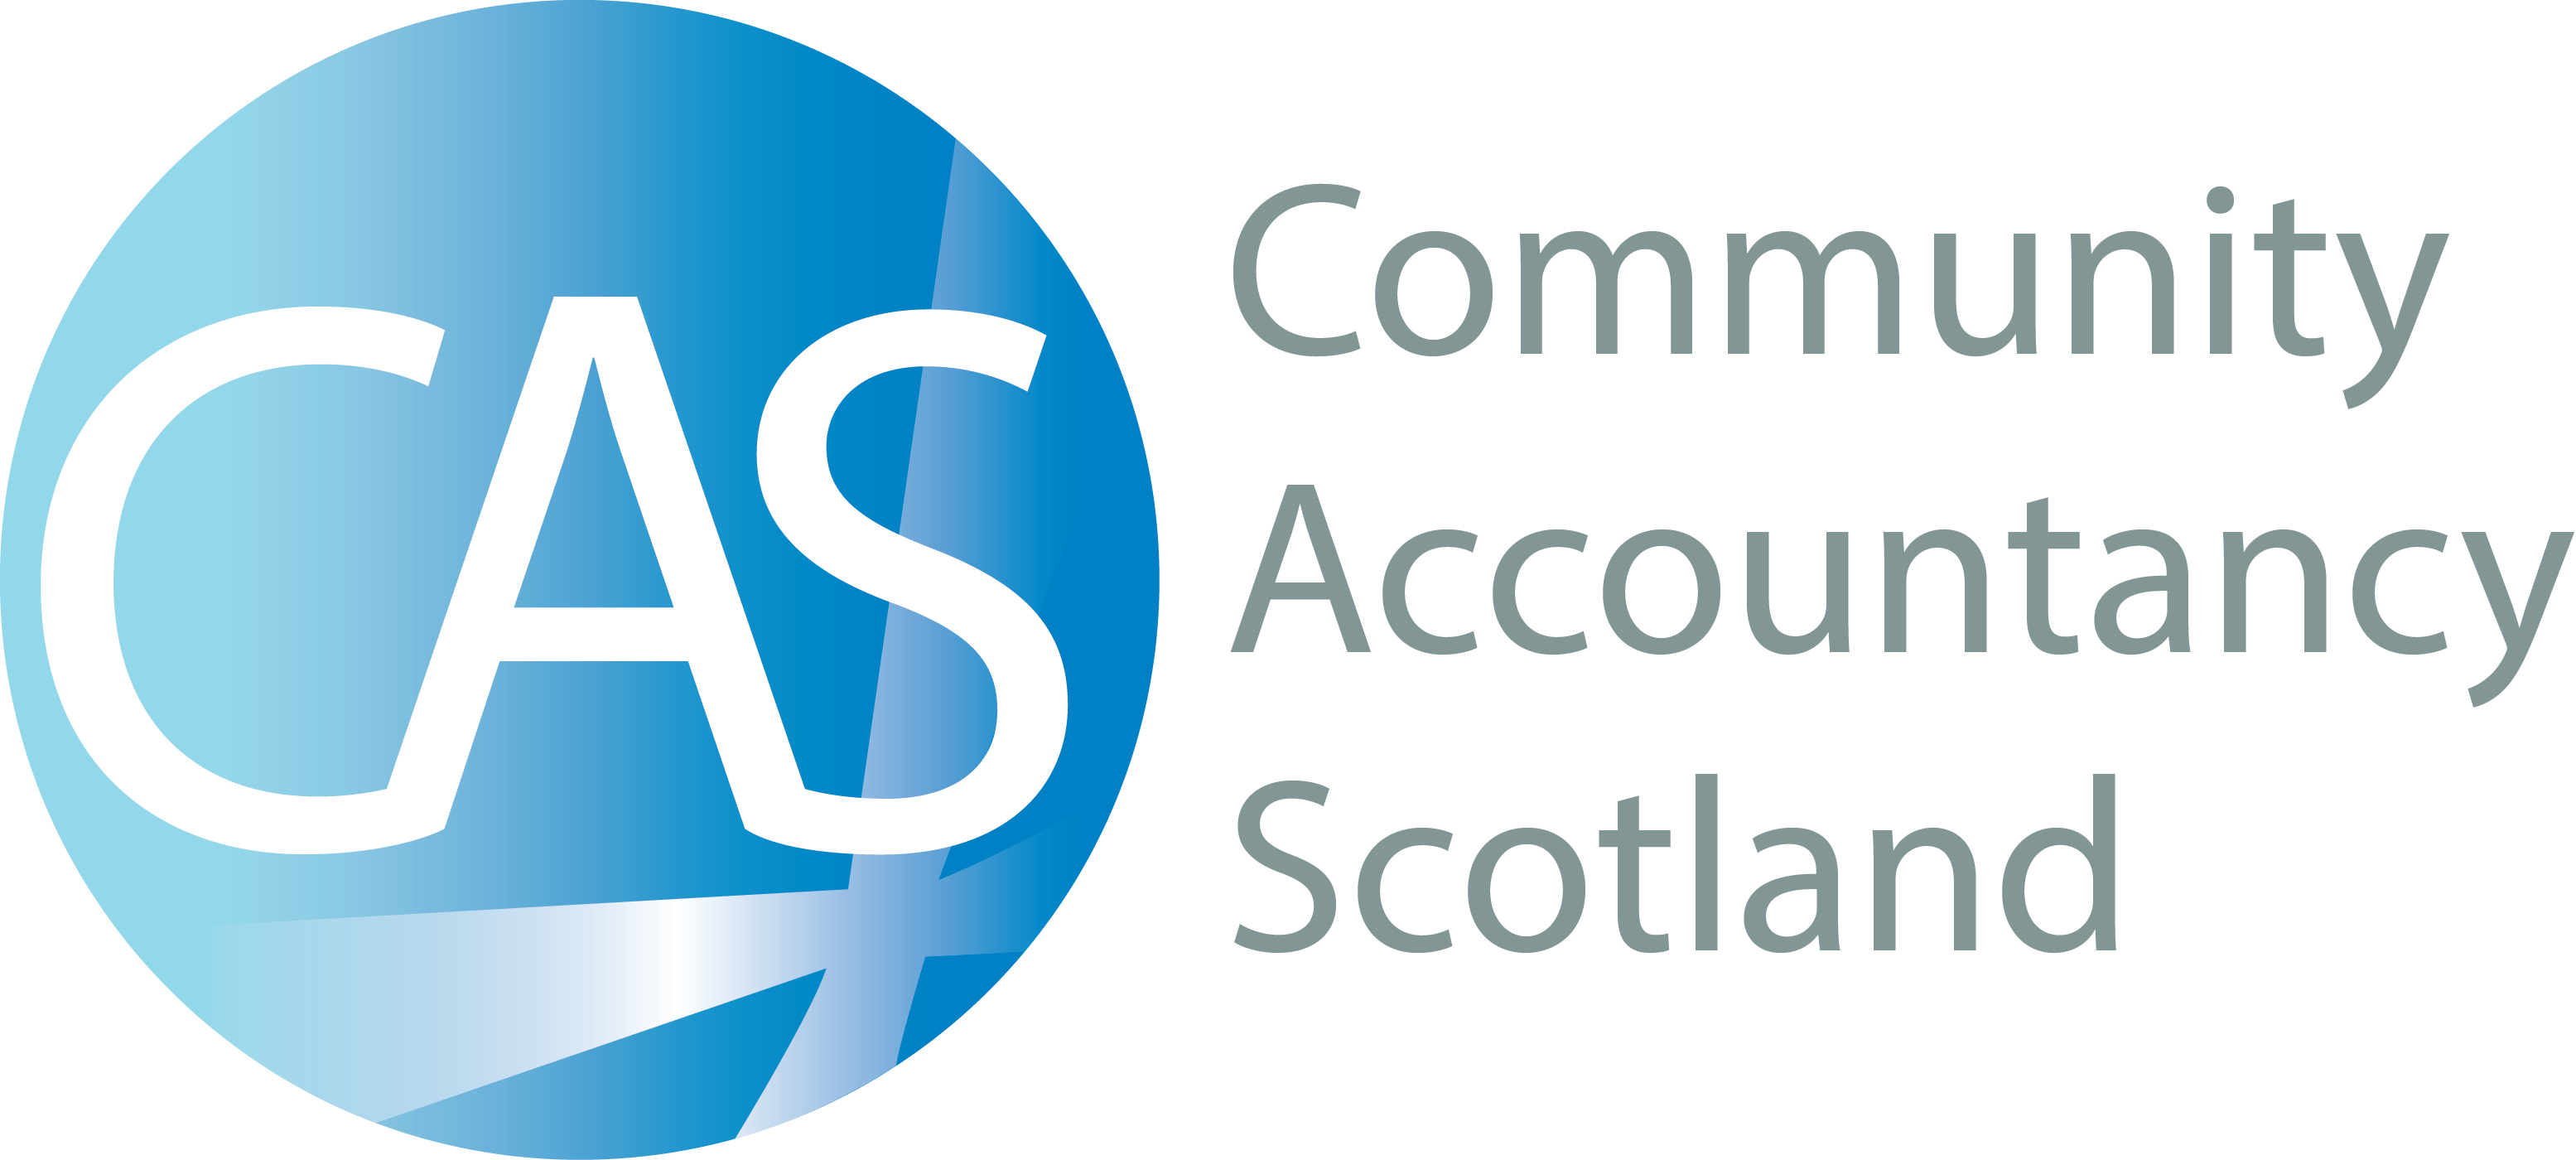 Community Accountancy Scotland